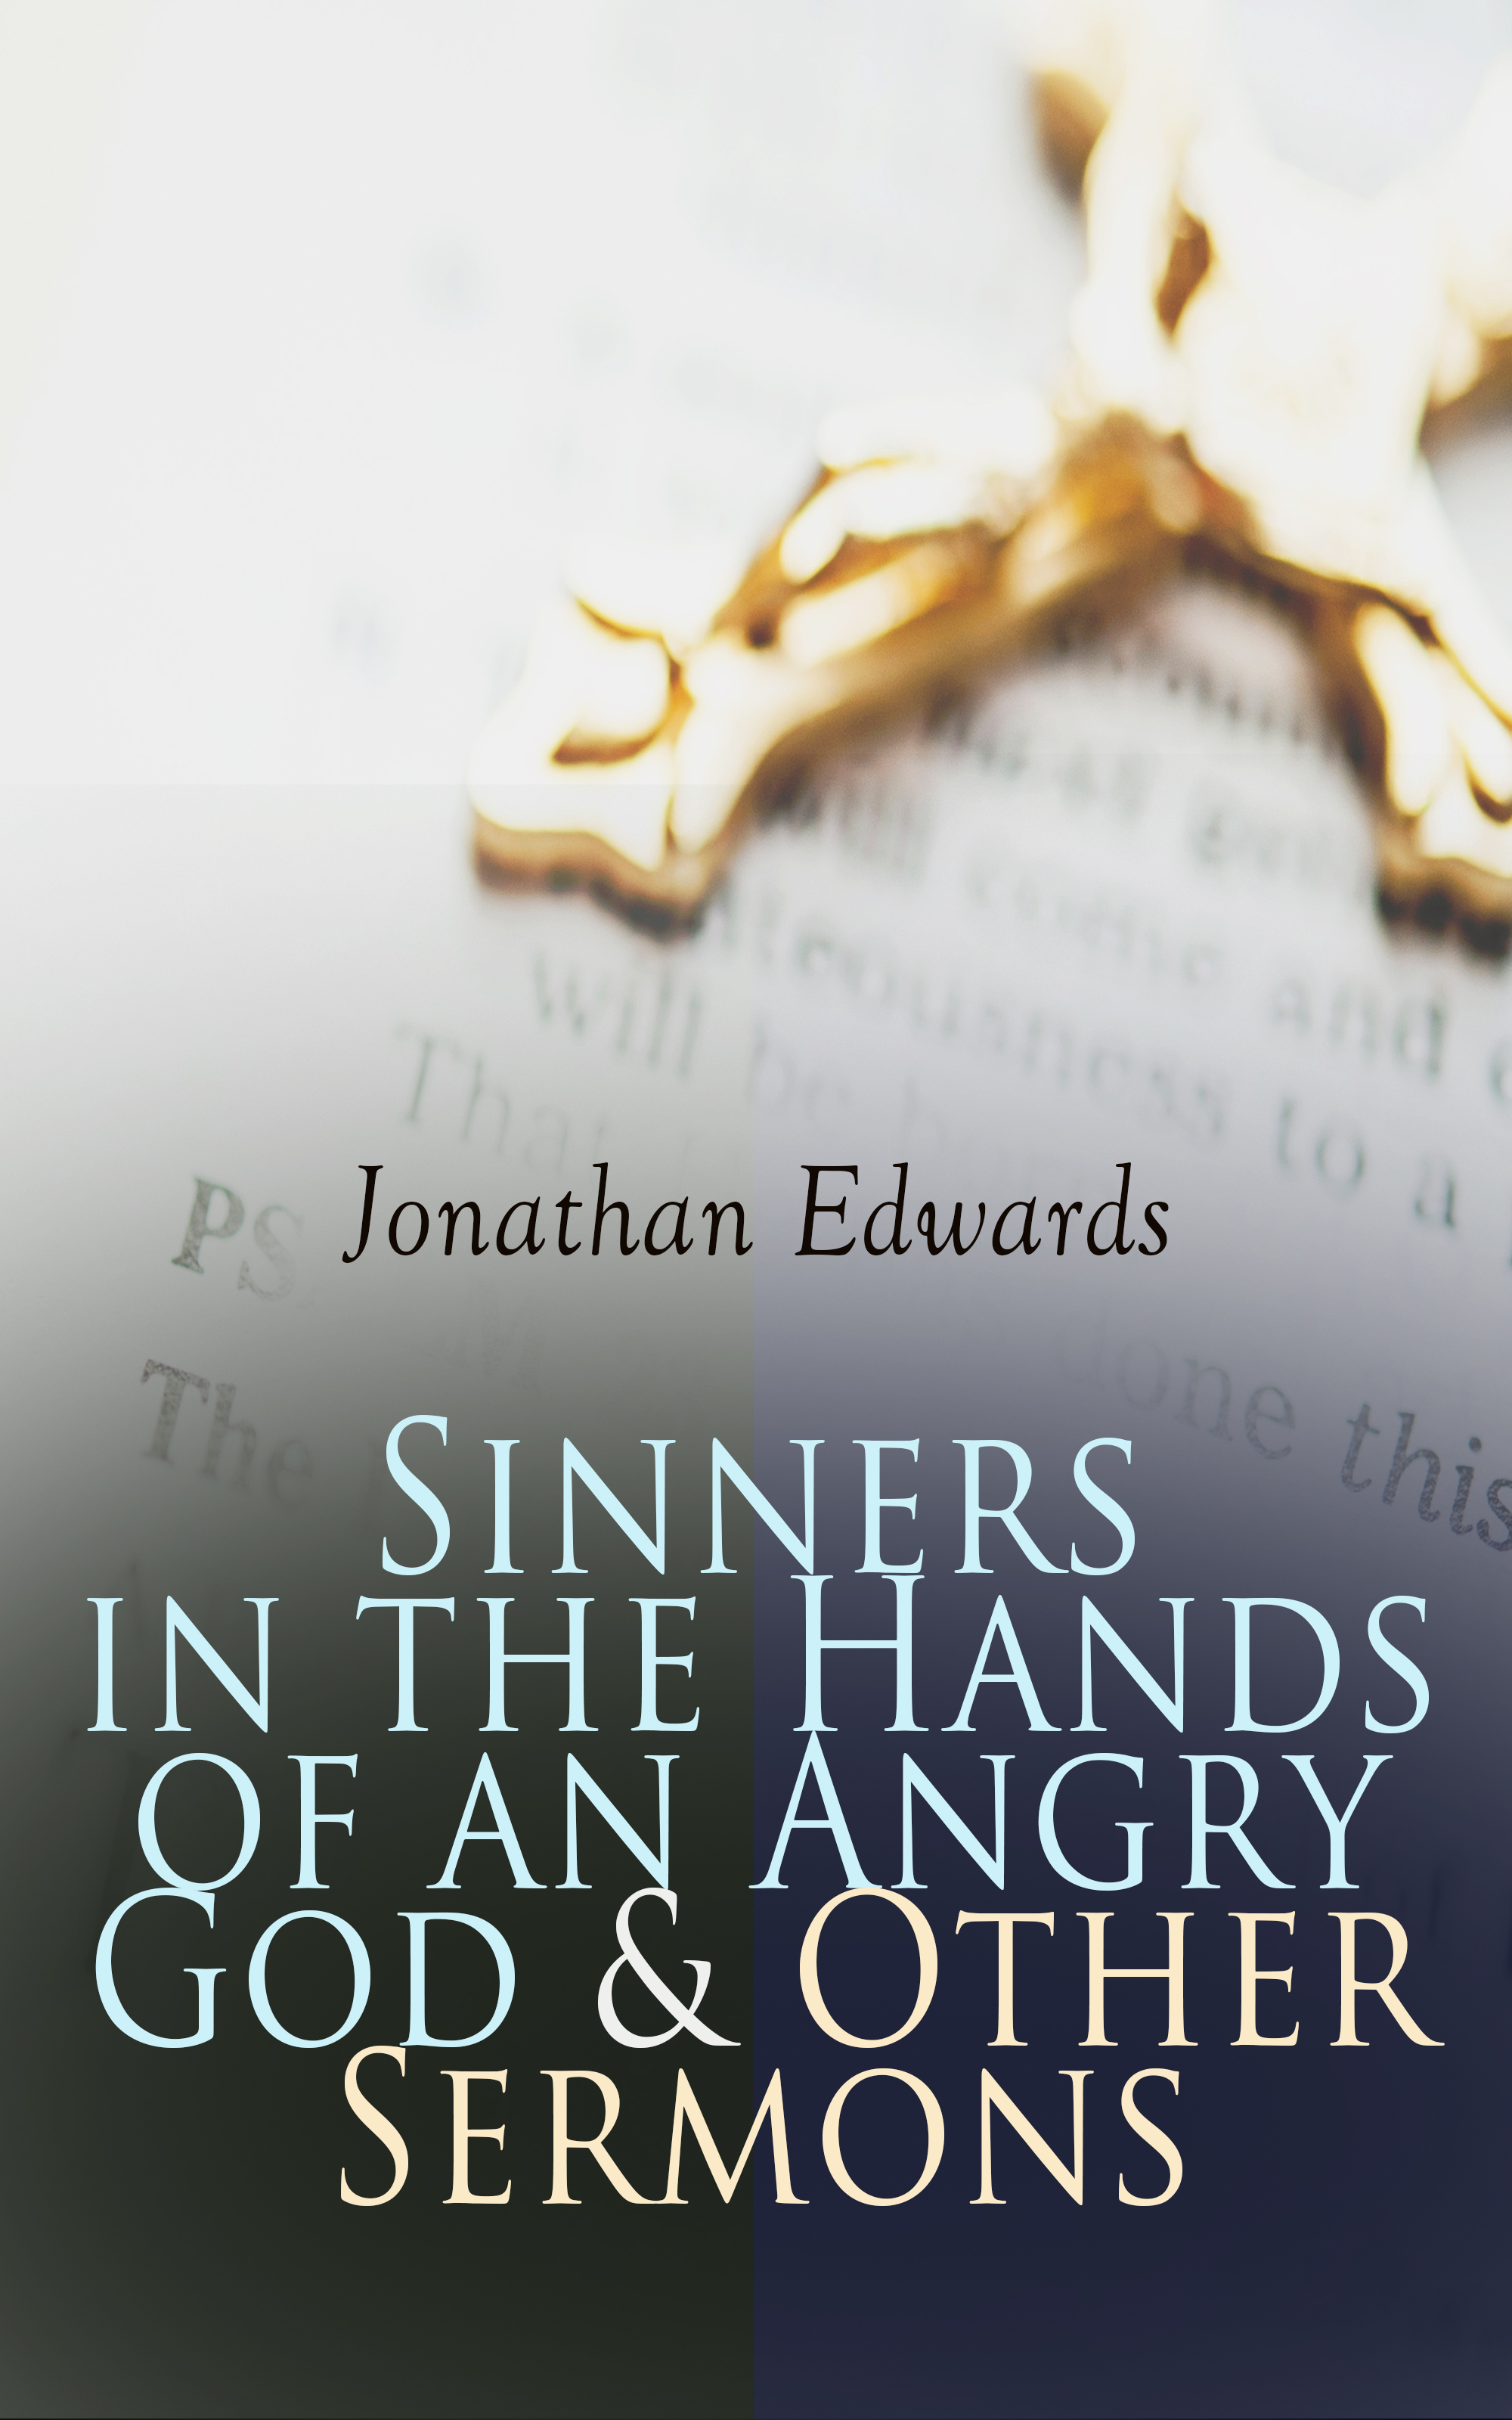 Jonathan Edwards Sinners in the Hands of an Angry God & Other Sermons god and us a series of biblical sermons